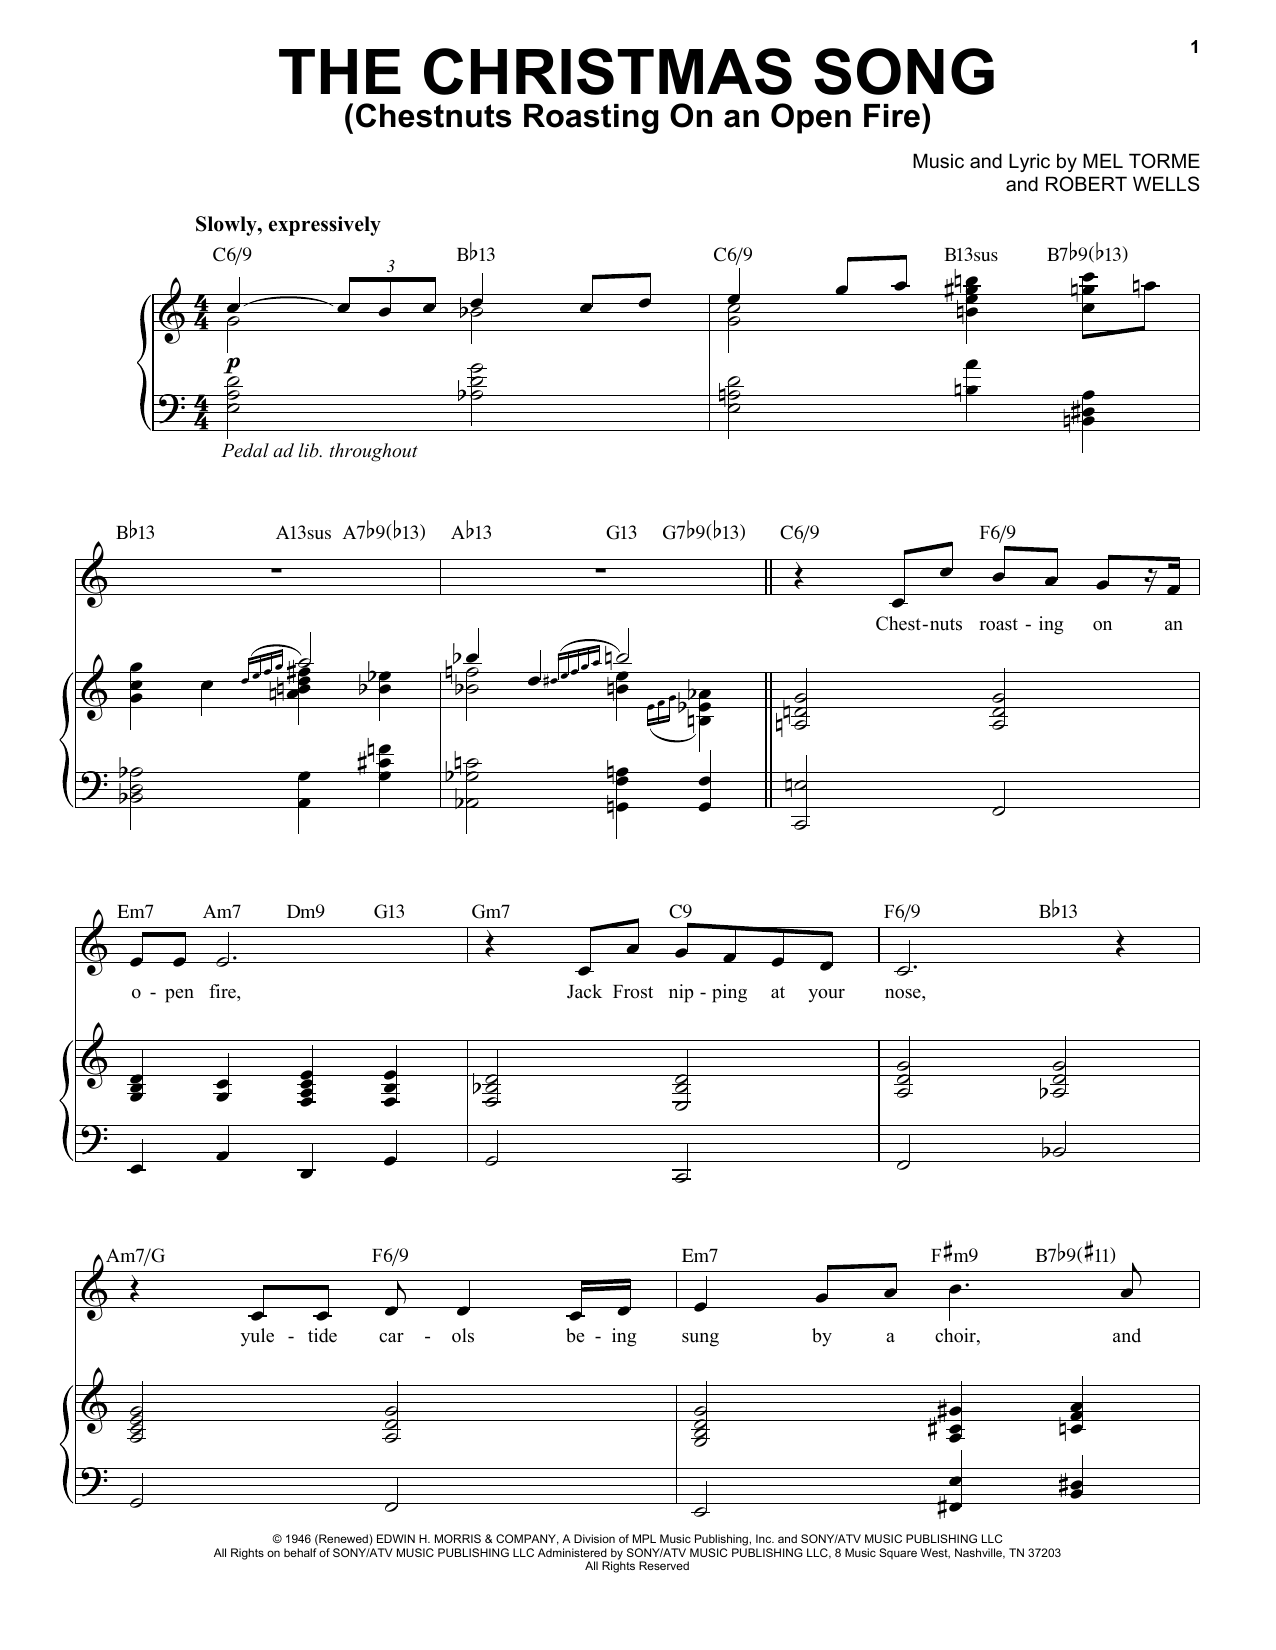 The Christmas Song (Chestnuts Roasting On An Open Fire) sheet music for voice and piano by Robert Wells